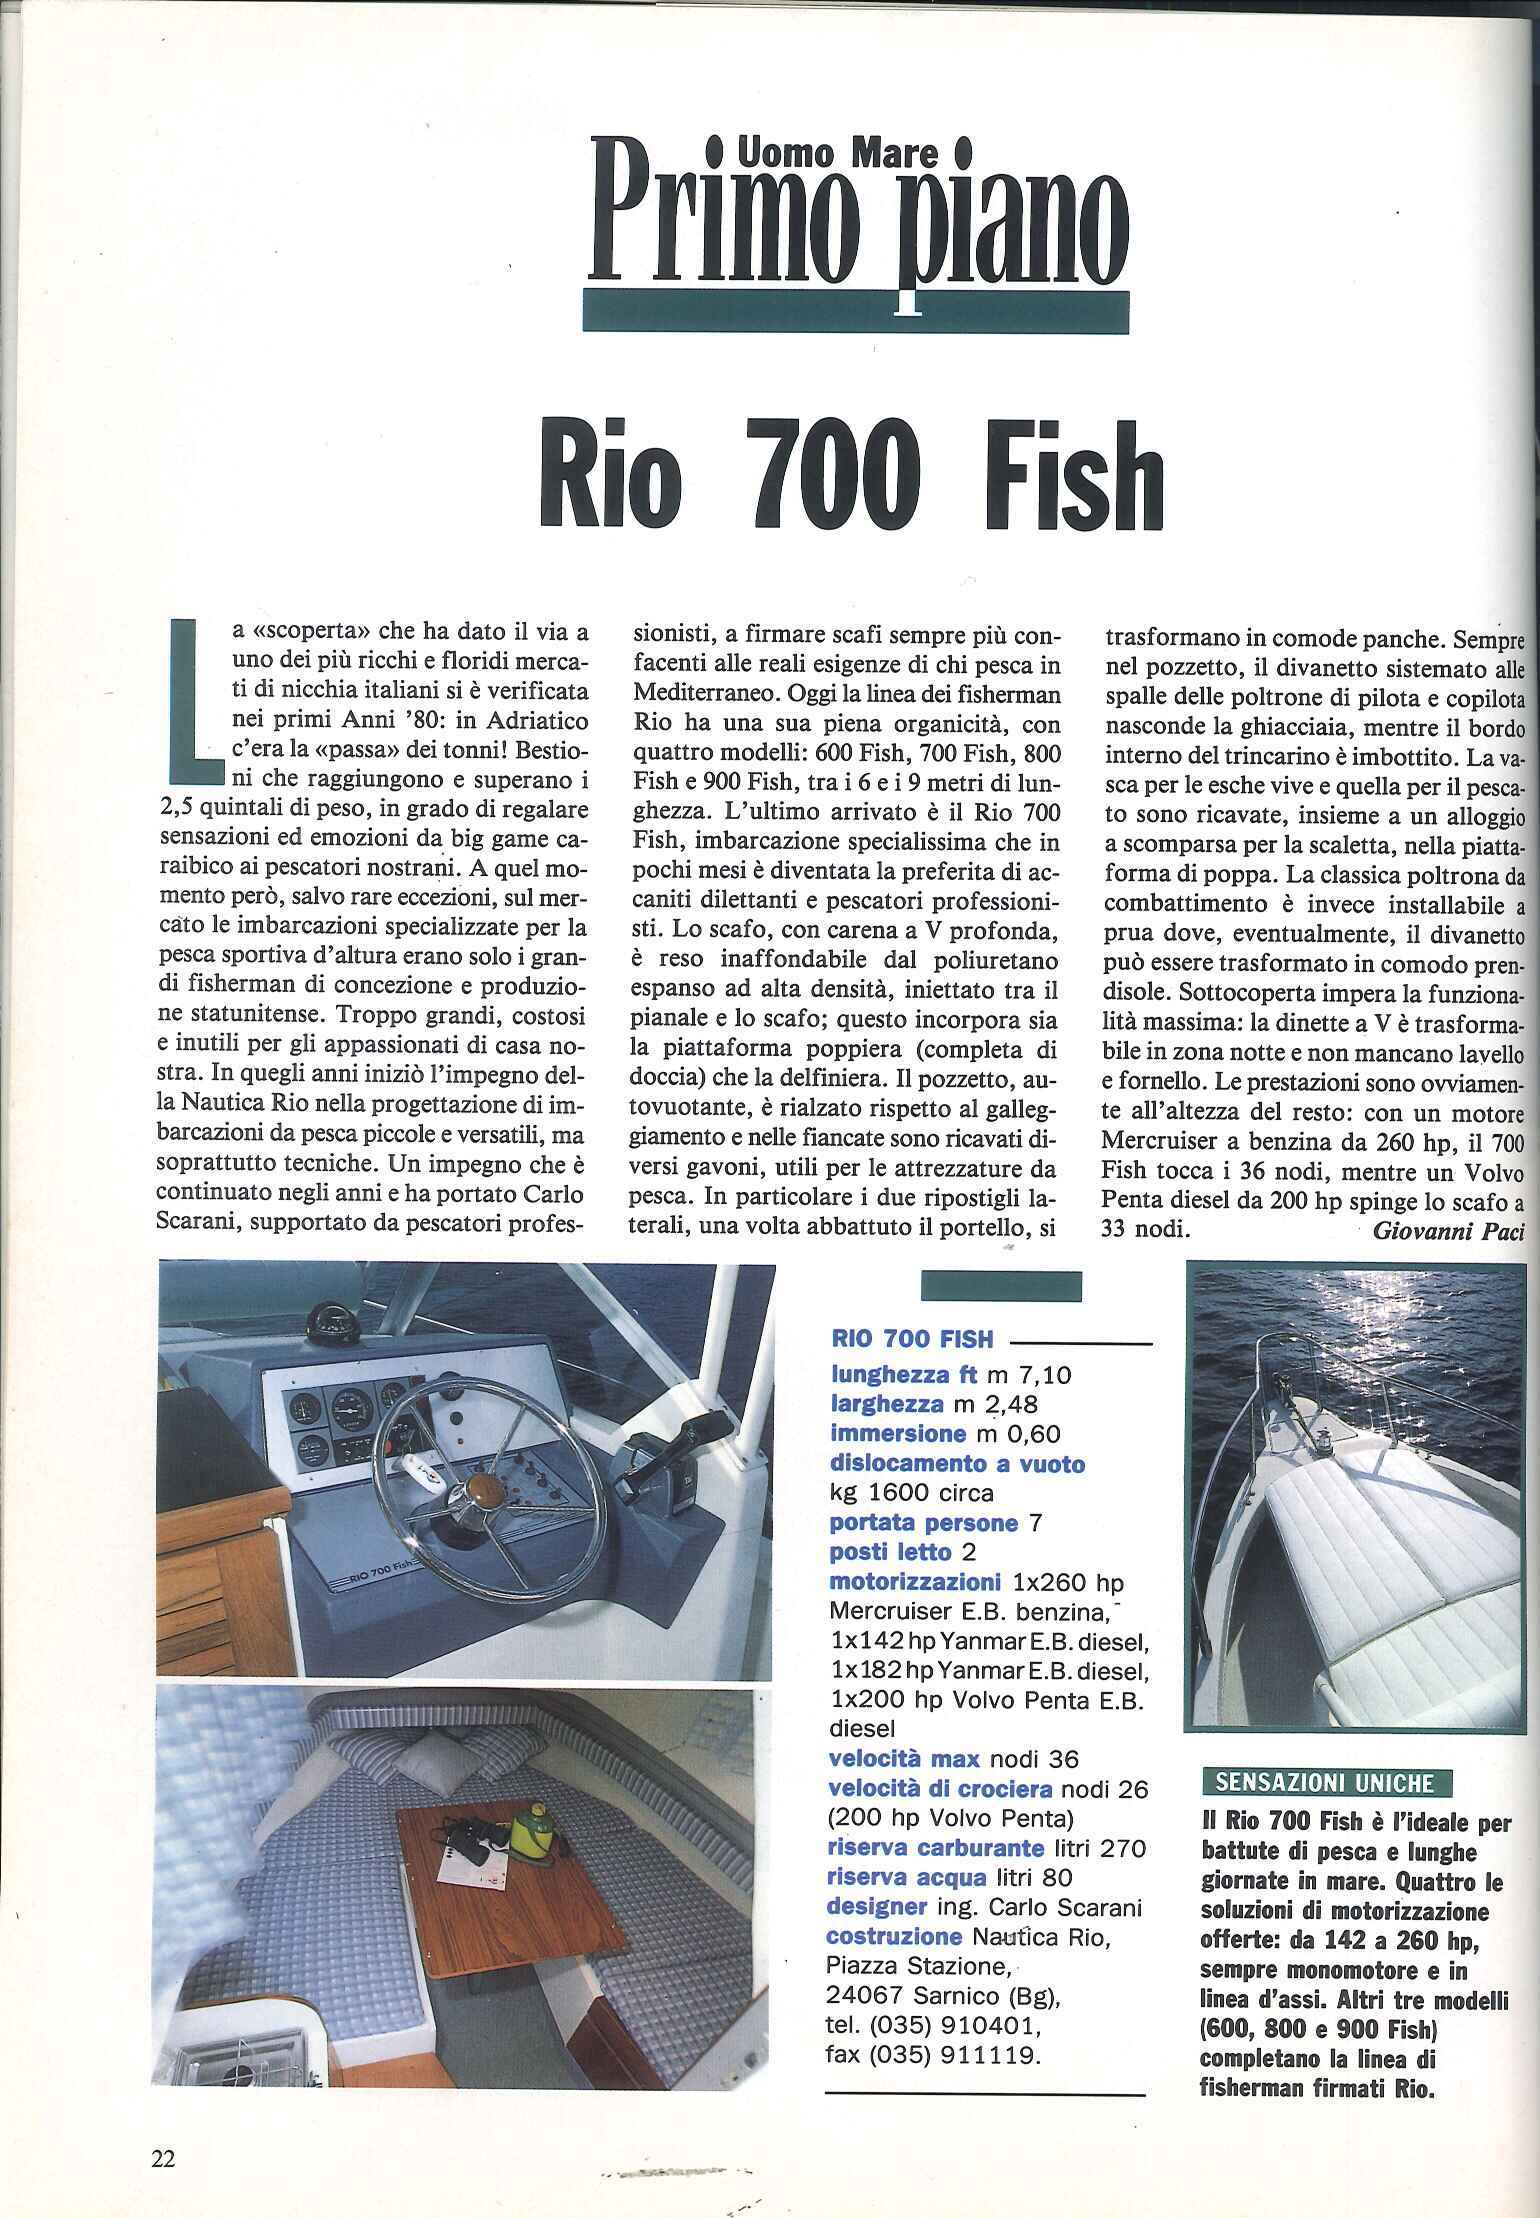 1992 06 PRESS RIO 700 FISH Uomo Mare n°161 (4).jpg